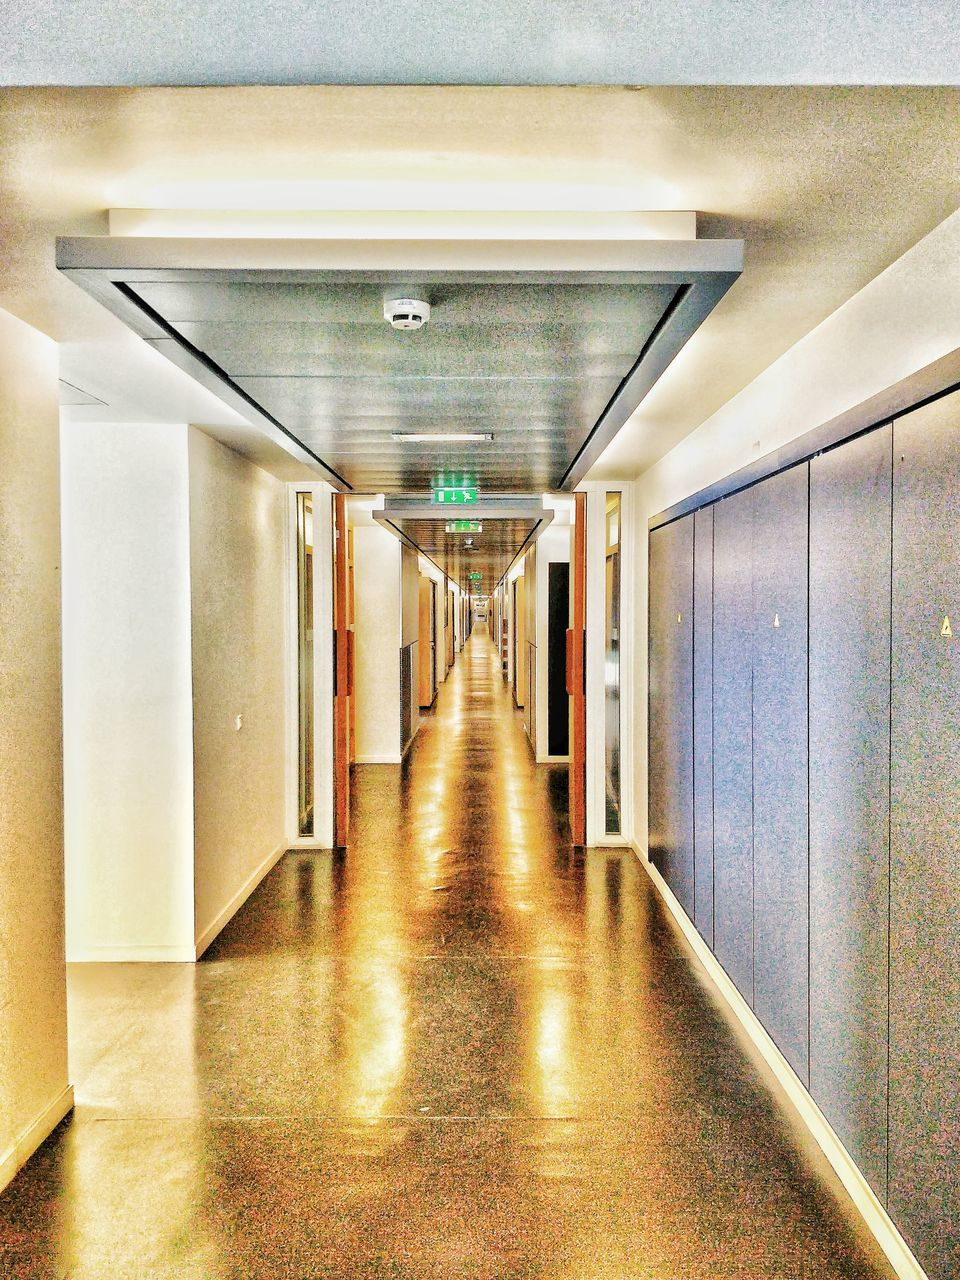 architecture, arcade, corridor, the way forward, direction, empty, indoors, building, illuminated, built structure, diminishing perspective, no people, flooring, ceiling, reflection, lighting equipment, absence, wall - building feature, vanishing point, long, light fixture, underground walkway